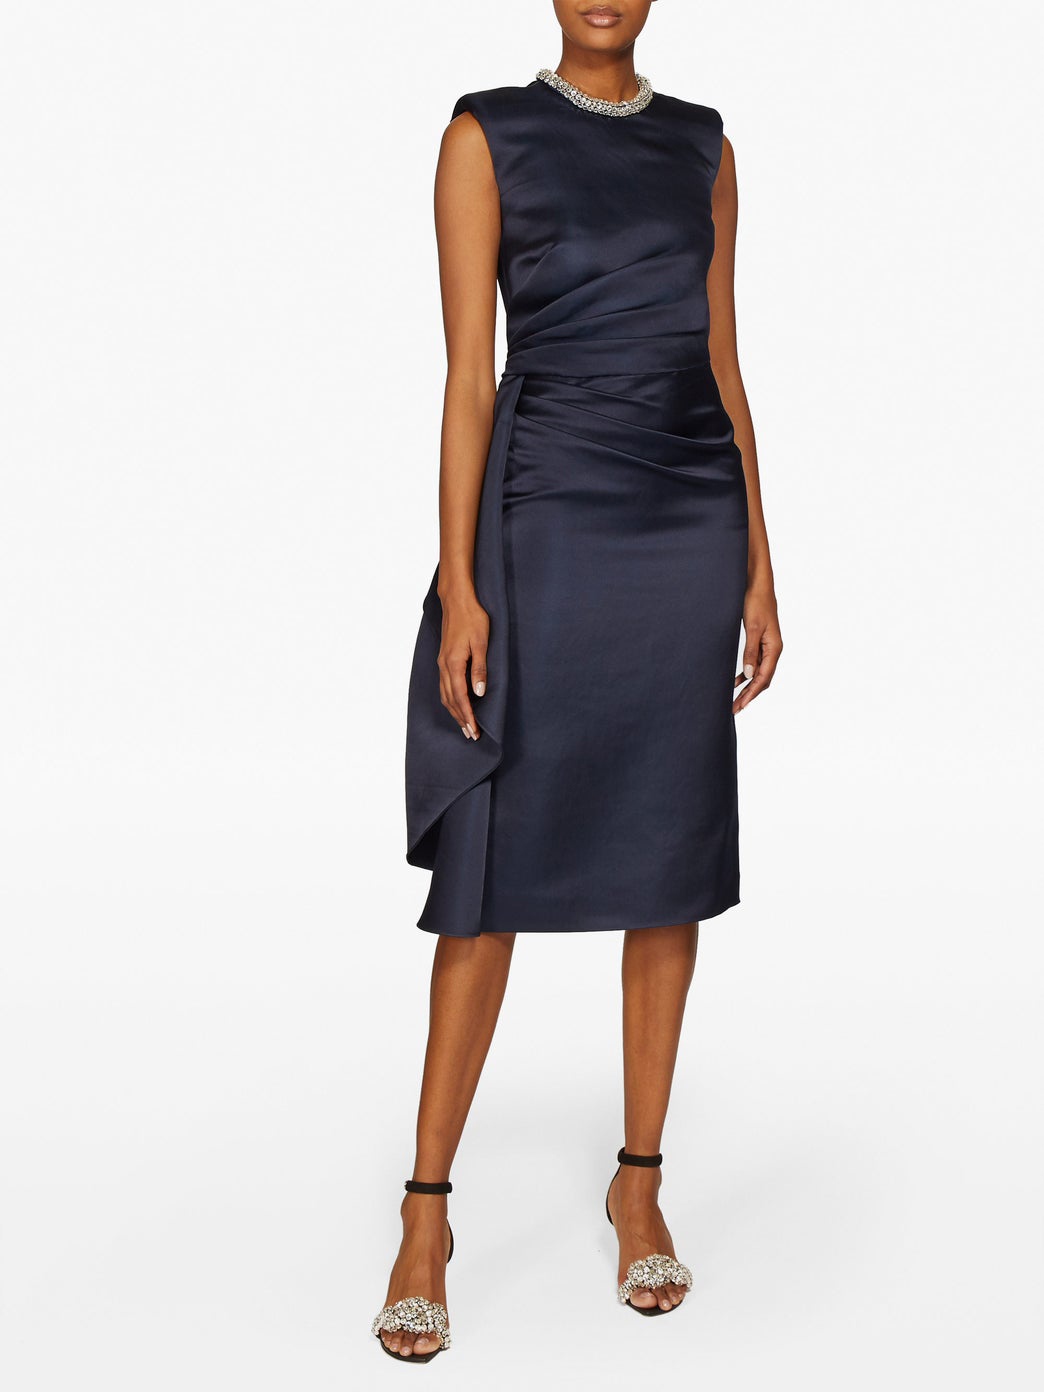 Alexander McQueen Satin Knee-Length Dress